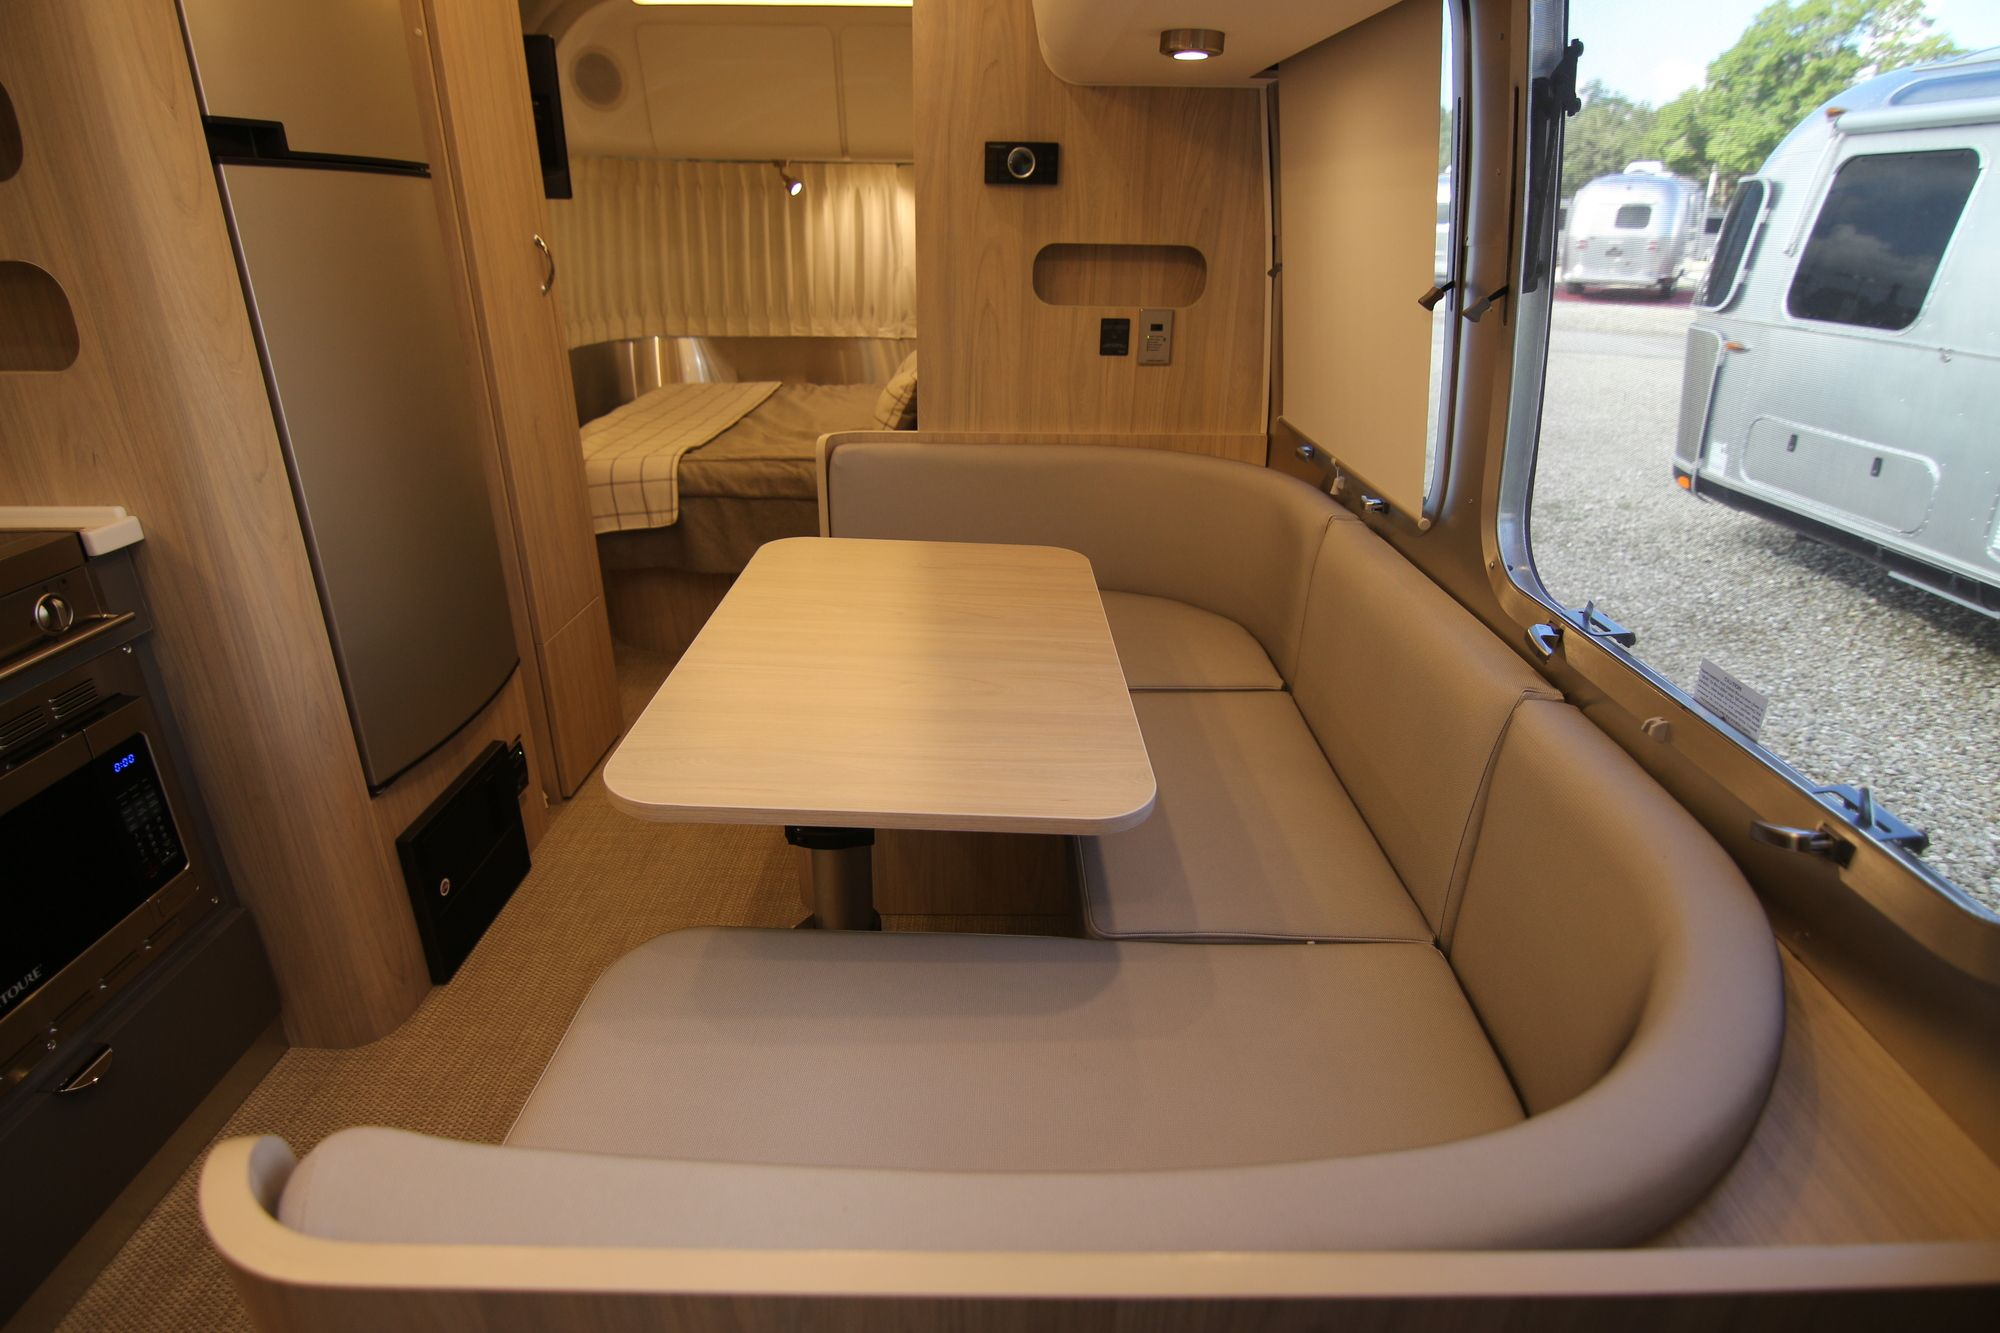 Dinette Table that converts to twin bed. Airstream Globetrotter 2020